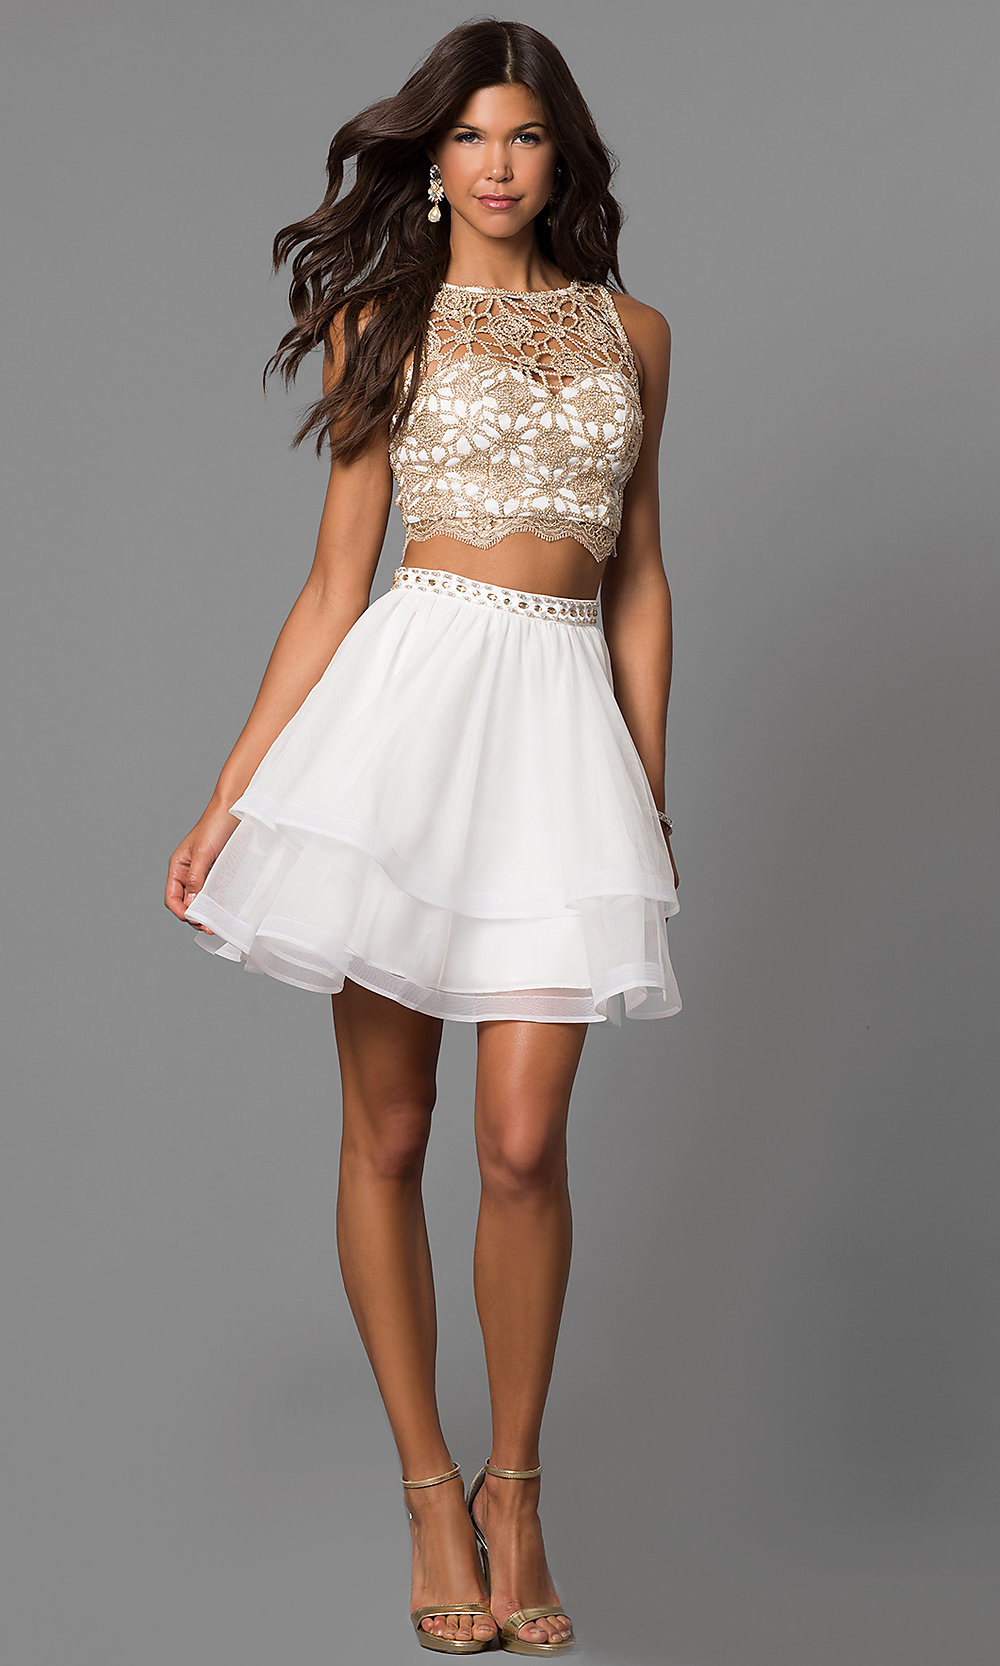 Sequin Hearts by My Michelle Prom Dresses - PromGirl